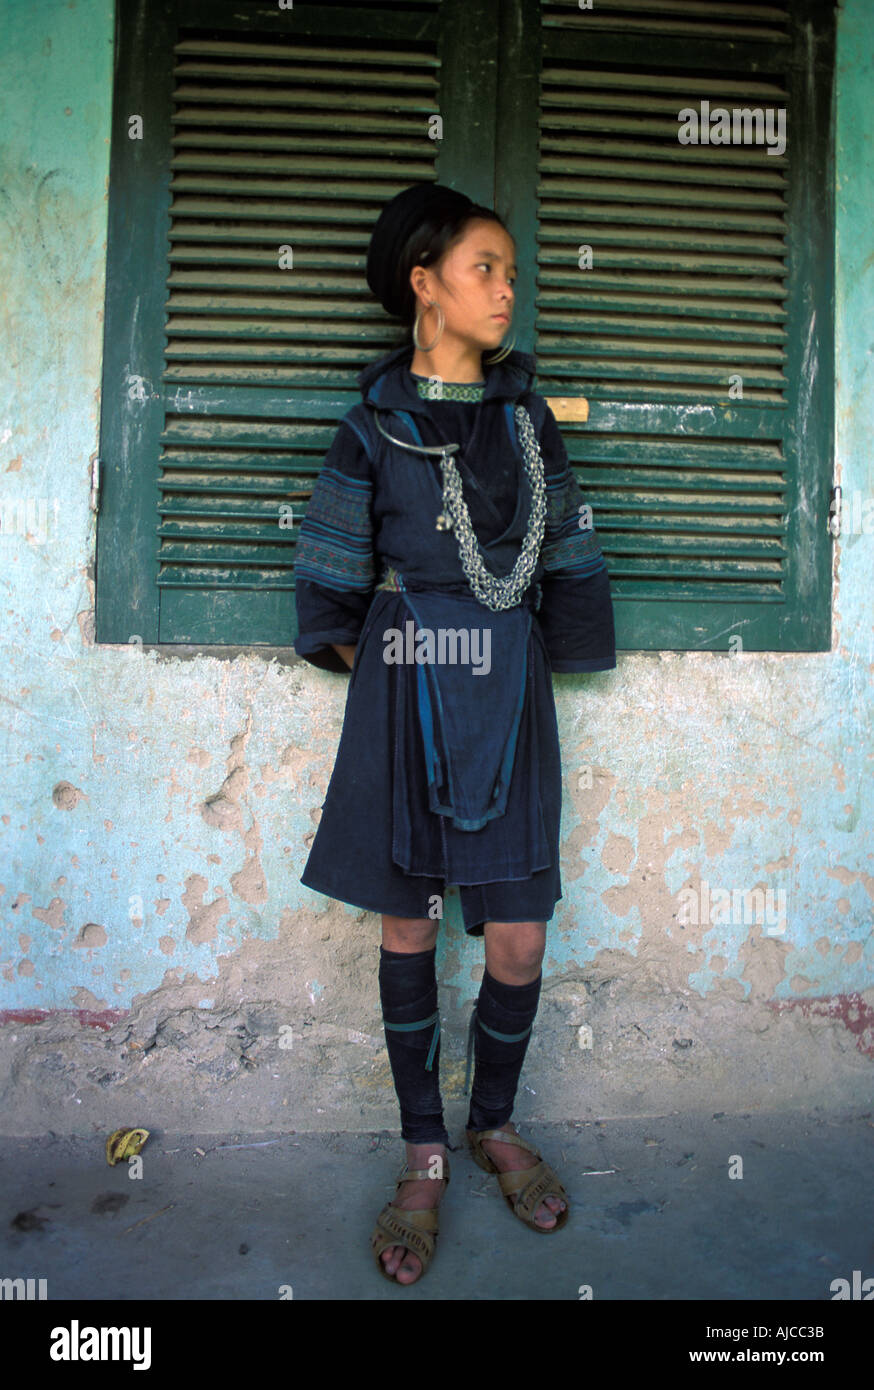 Black Hmong girl standing in a schoolhouse in a rural hamlet near Sapa Vietnam - Stock Image